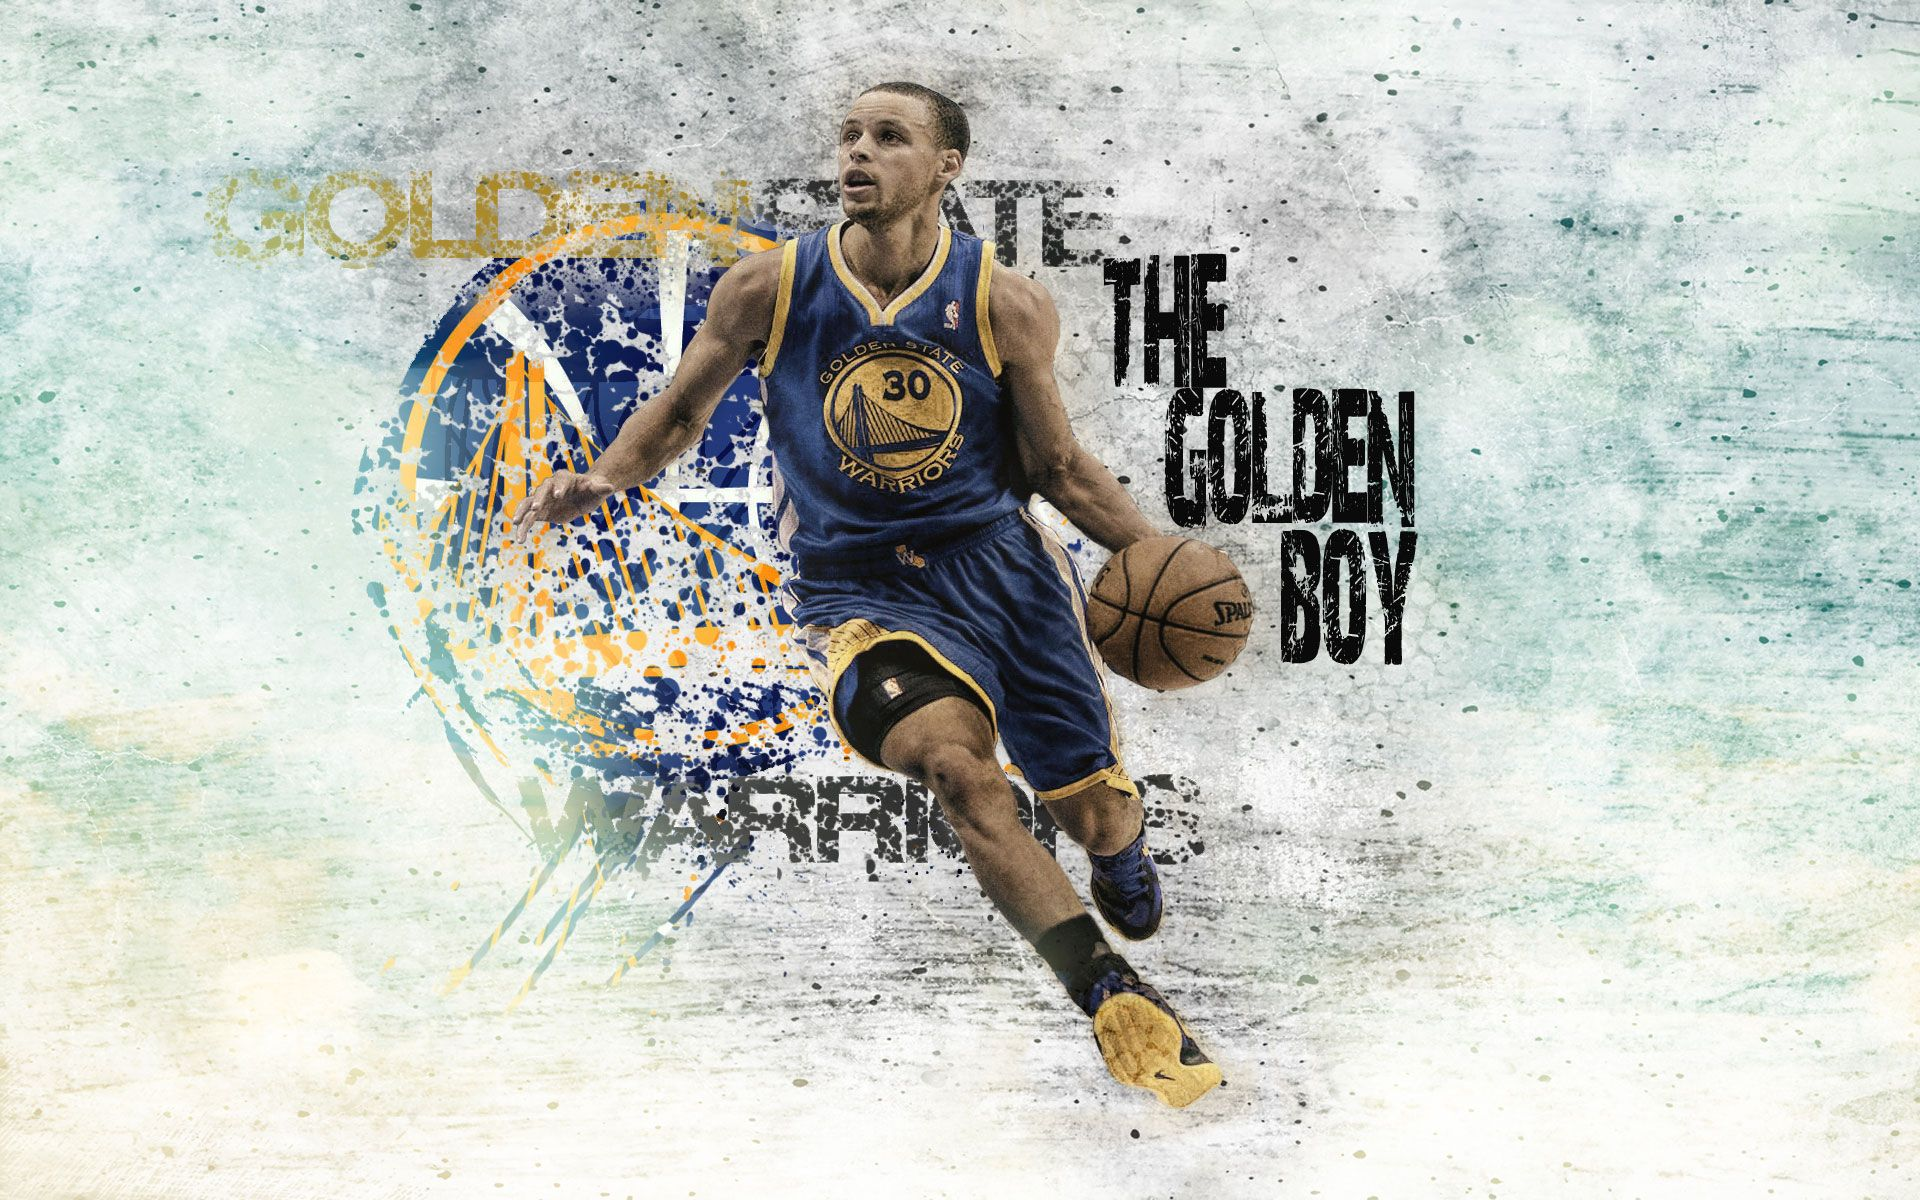 stephen curry wallpaper Google Search Sports